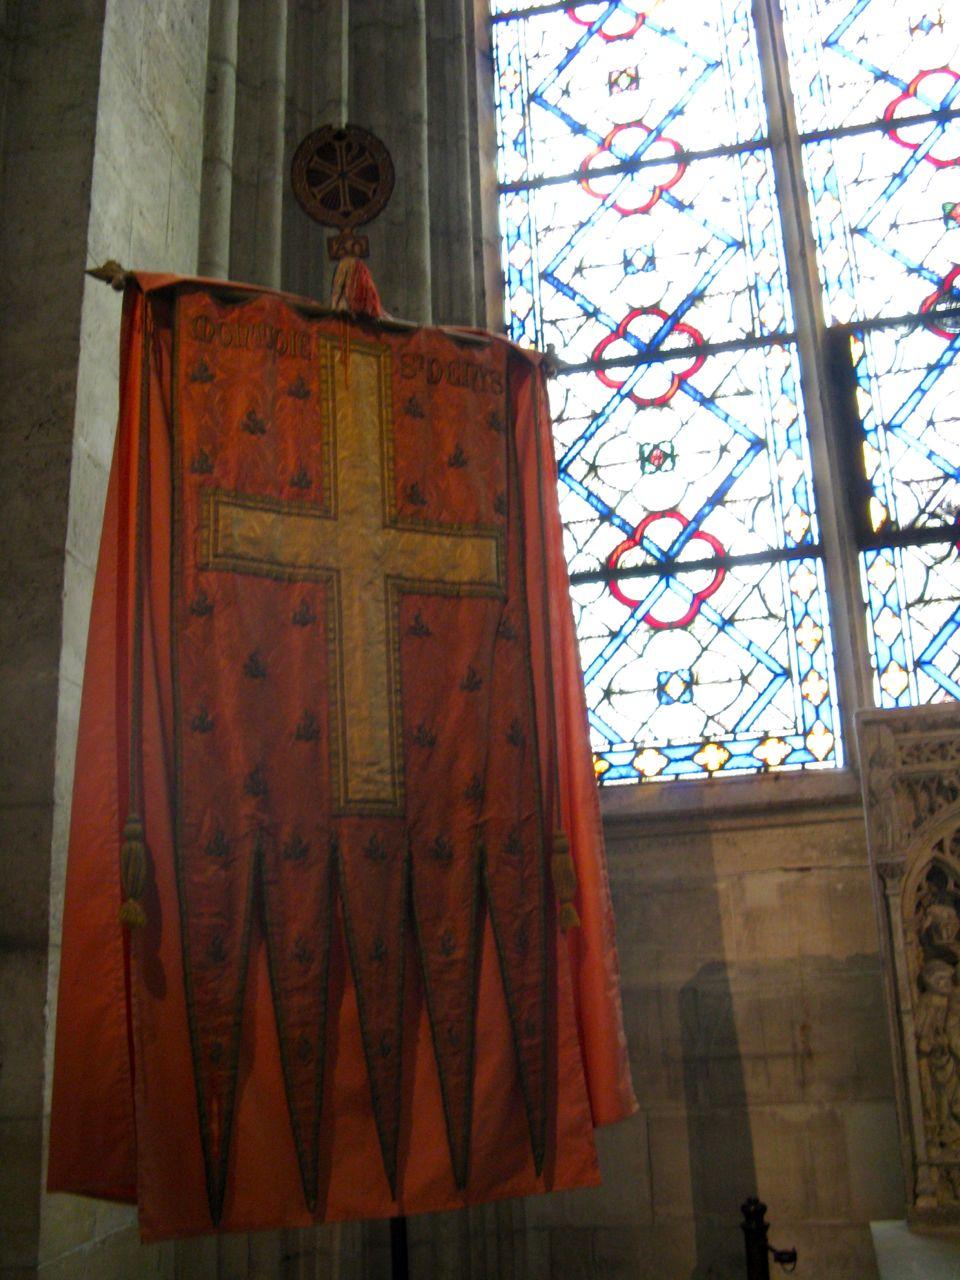 Connu Via viatores quaerit: St Denis IS28